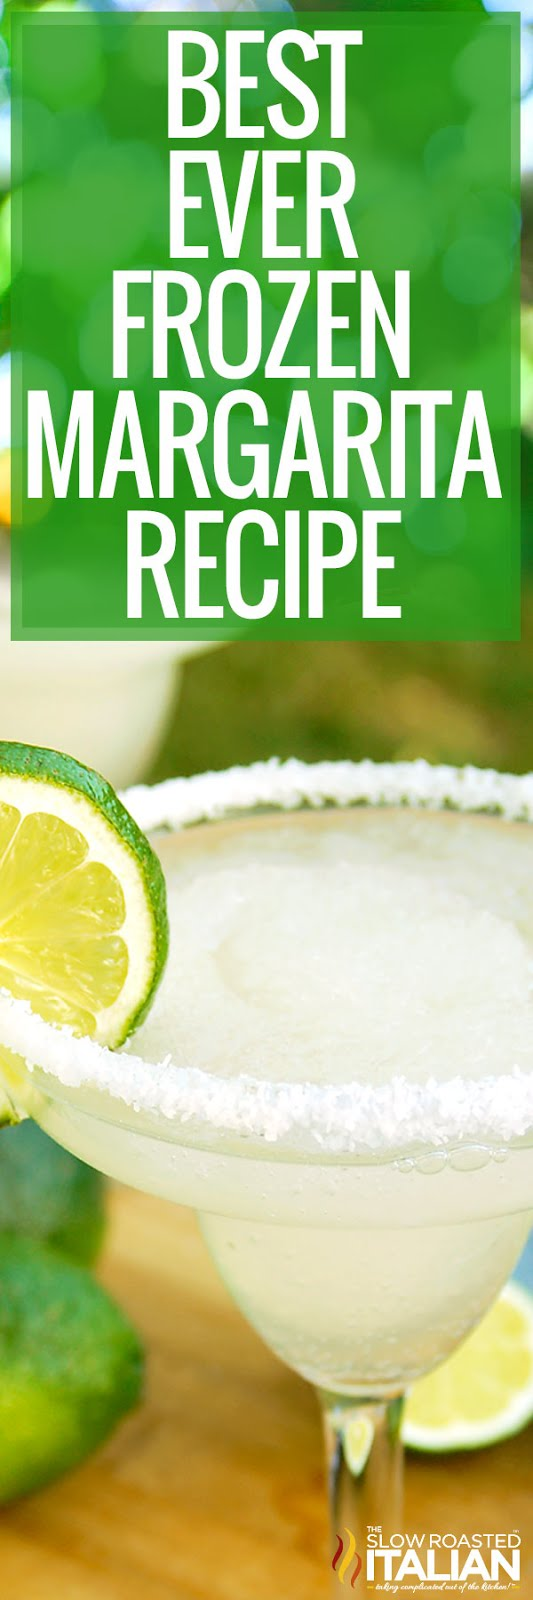 titled Pinterest photo (and shown): Best Ever Frozen Margarita Recipe